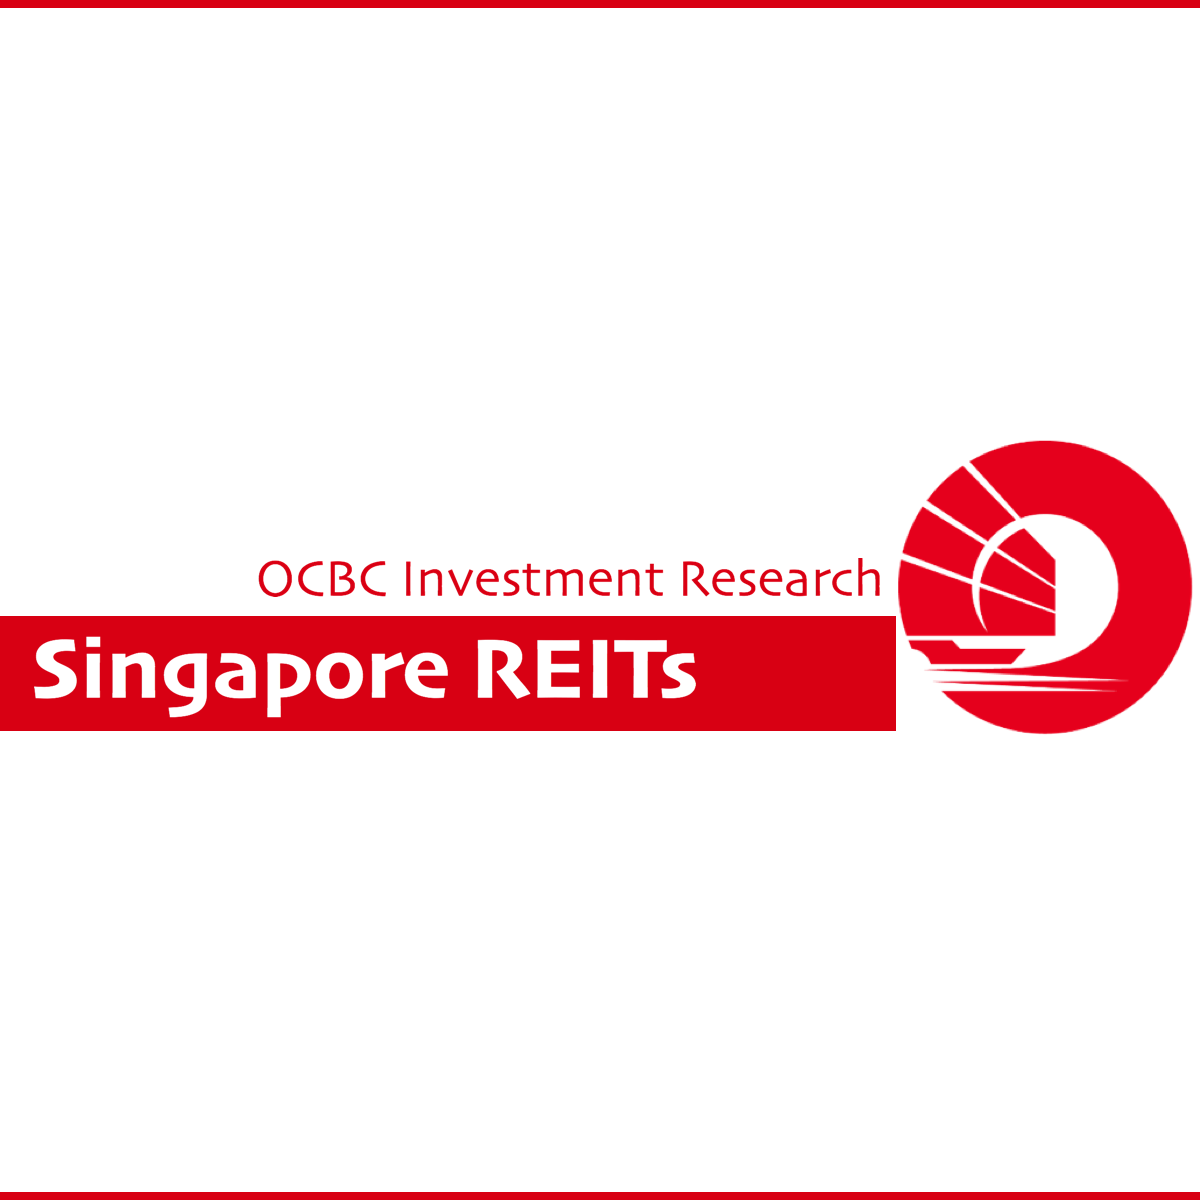 Singapore REITs - OCBC Investment 2017-03-23: Time to be selective, downgrade to NEUTRAL